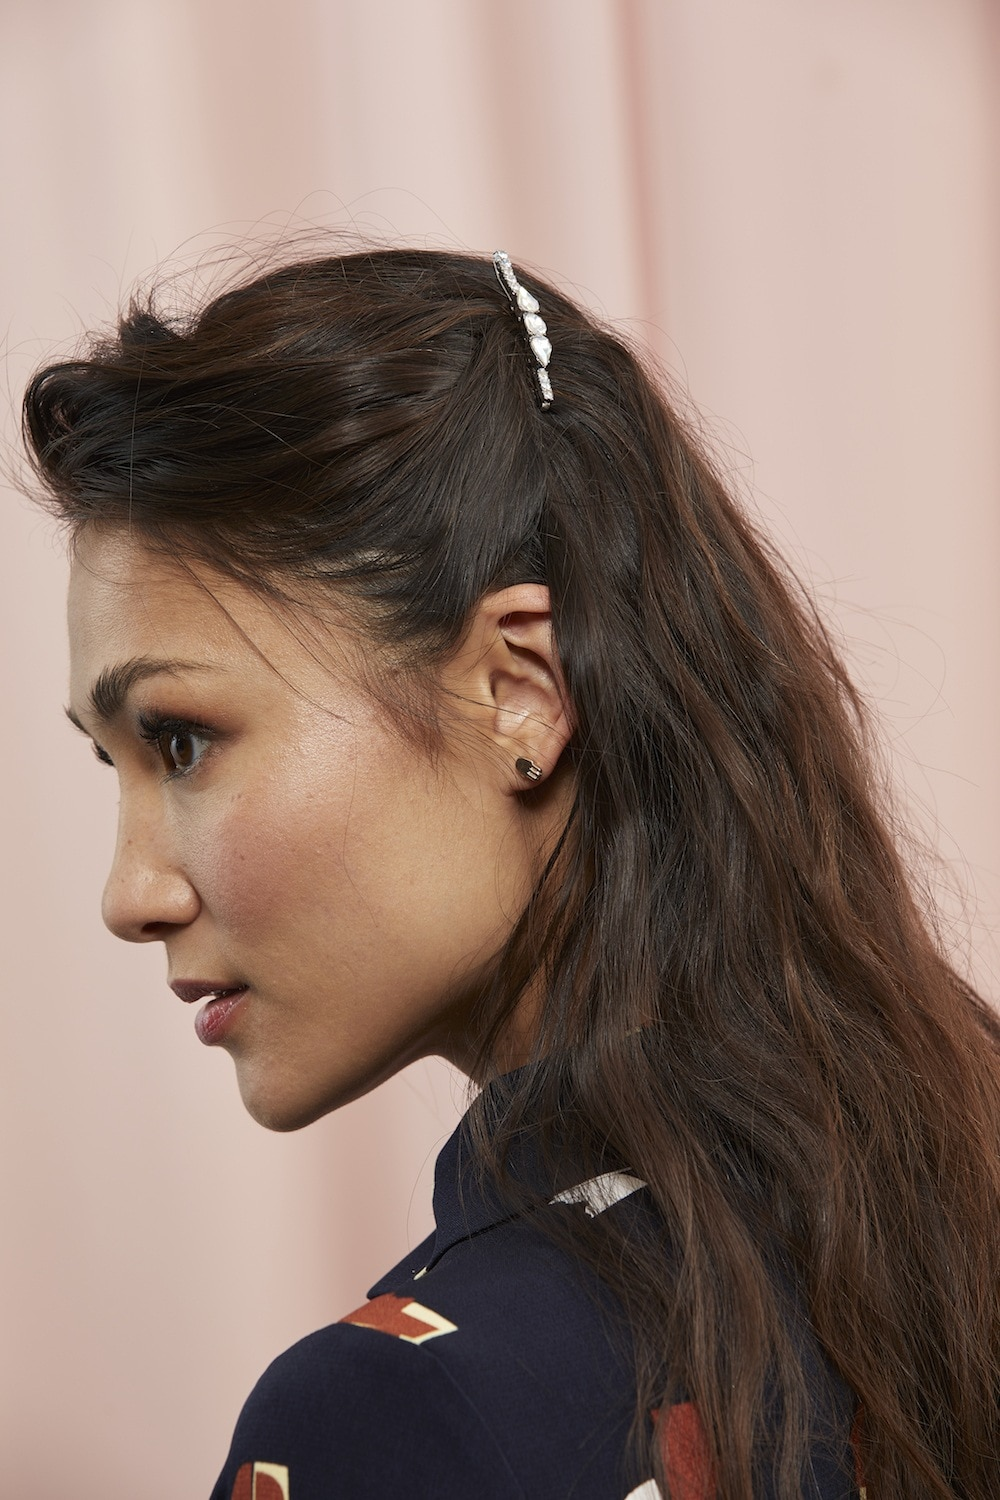 hair barrettes style side view